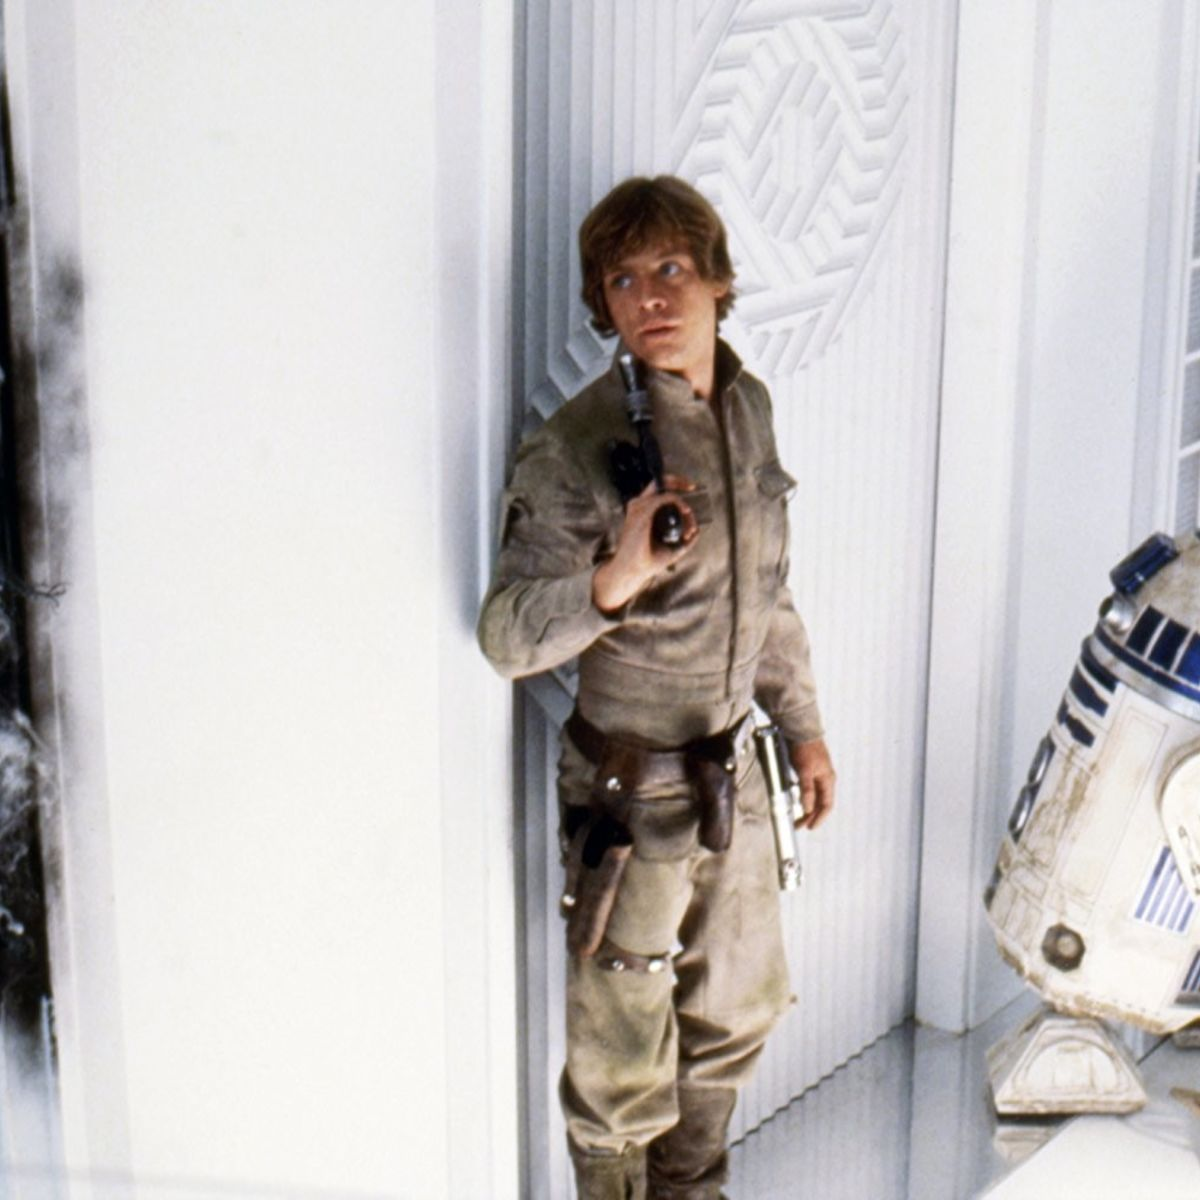 r2d2 luke skywalker star wars empire strikes back